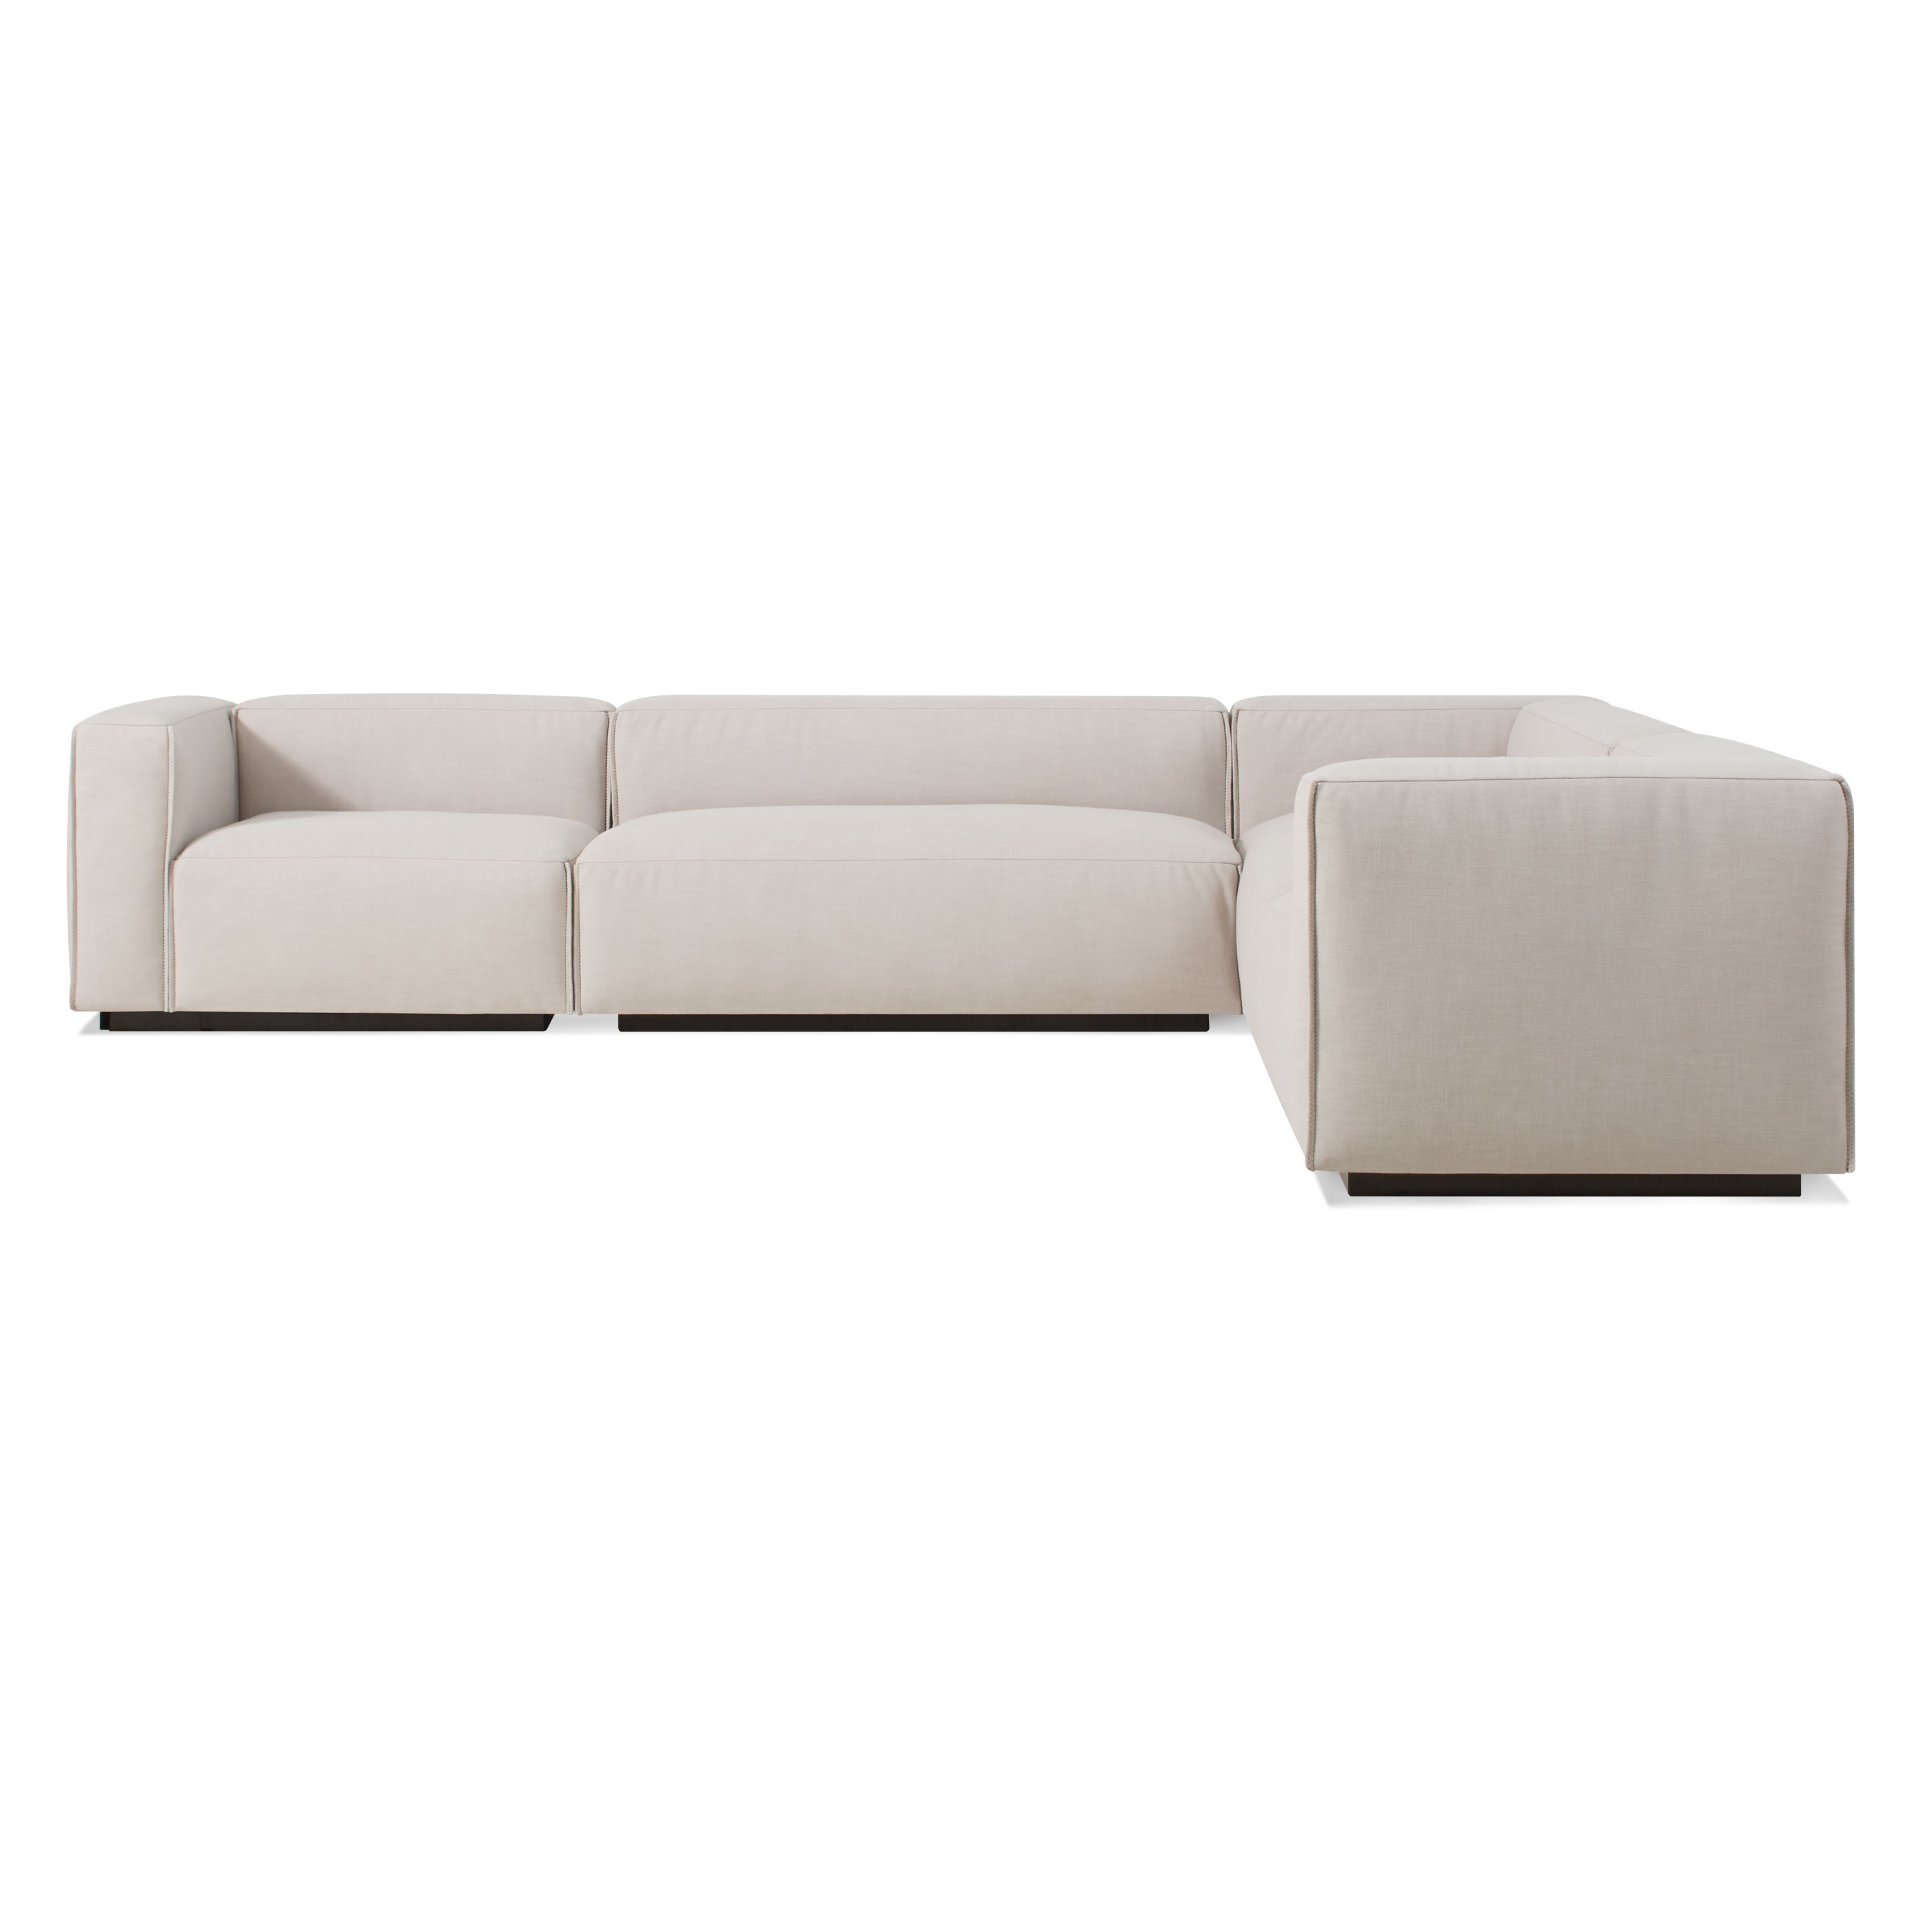 Cleon Large Modern Sectional Sofa (View 3 of 15)